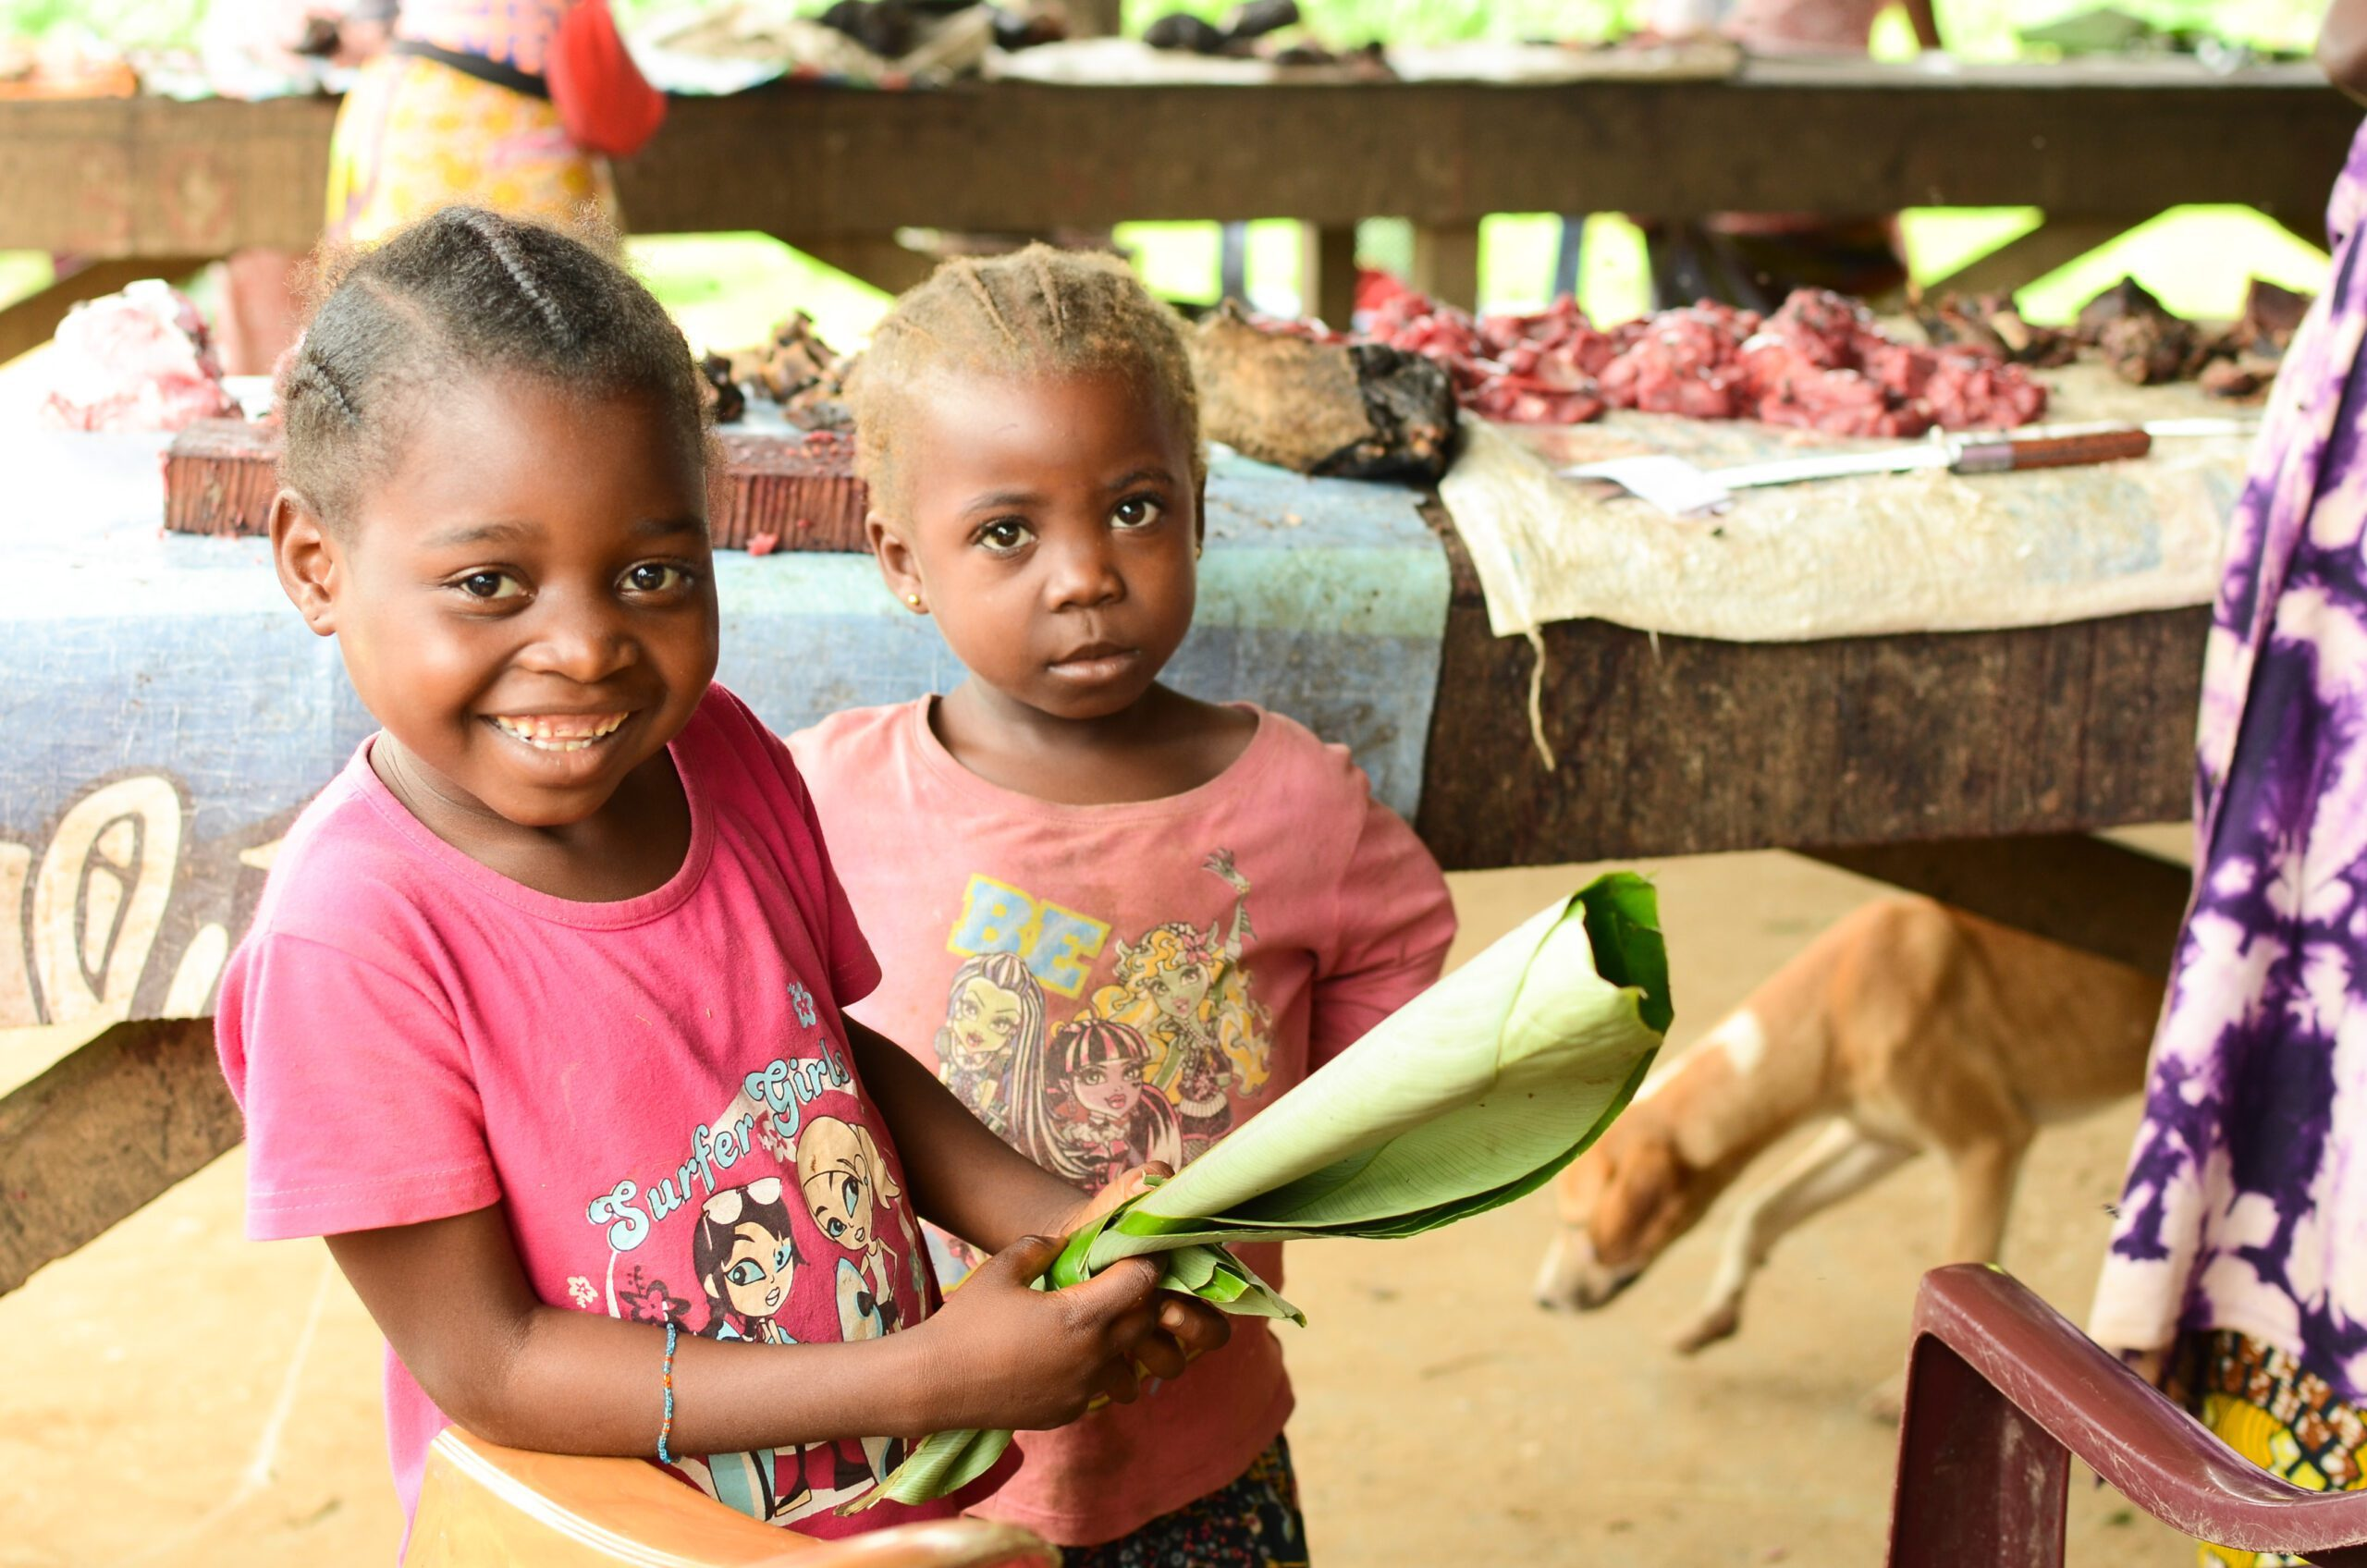 Children in Brazzaville market